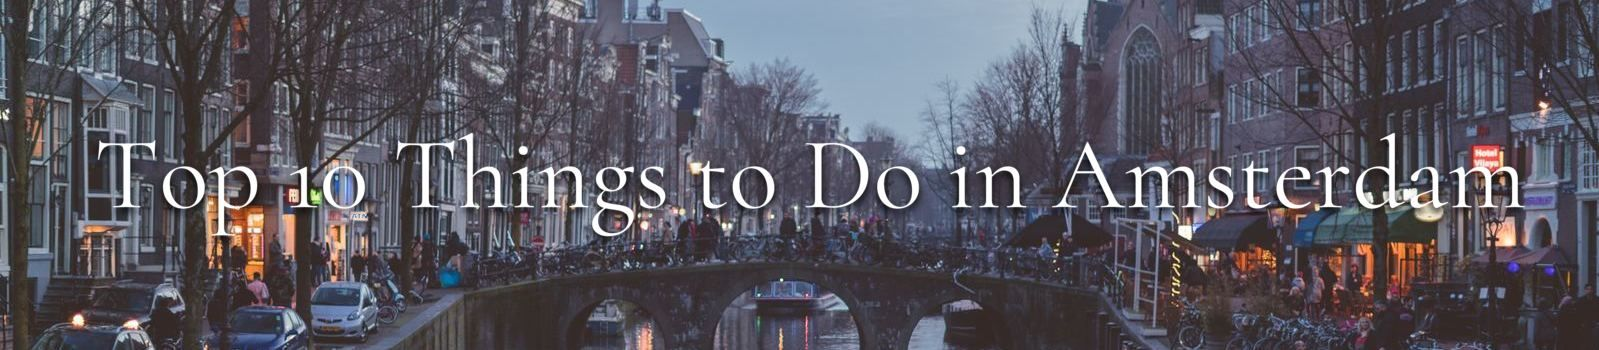 Top 10 Things to Do in Amsterdam Banner